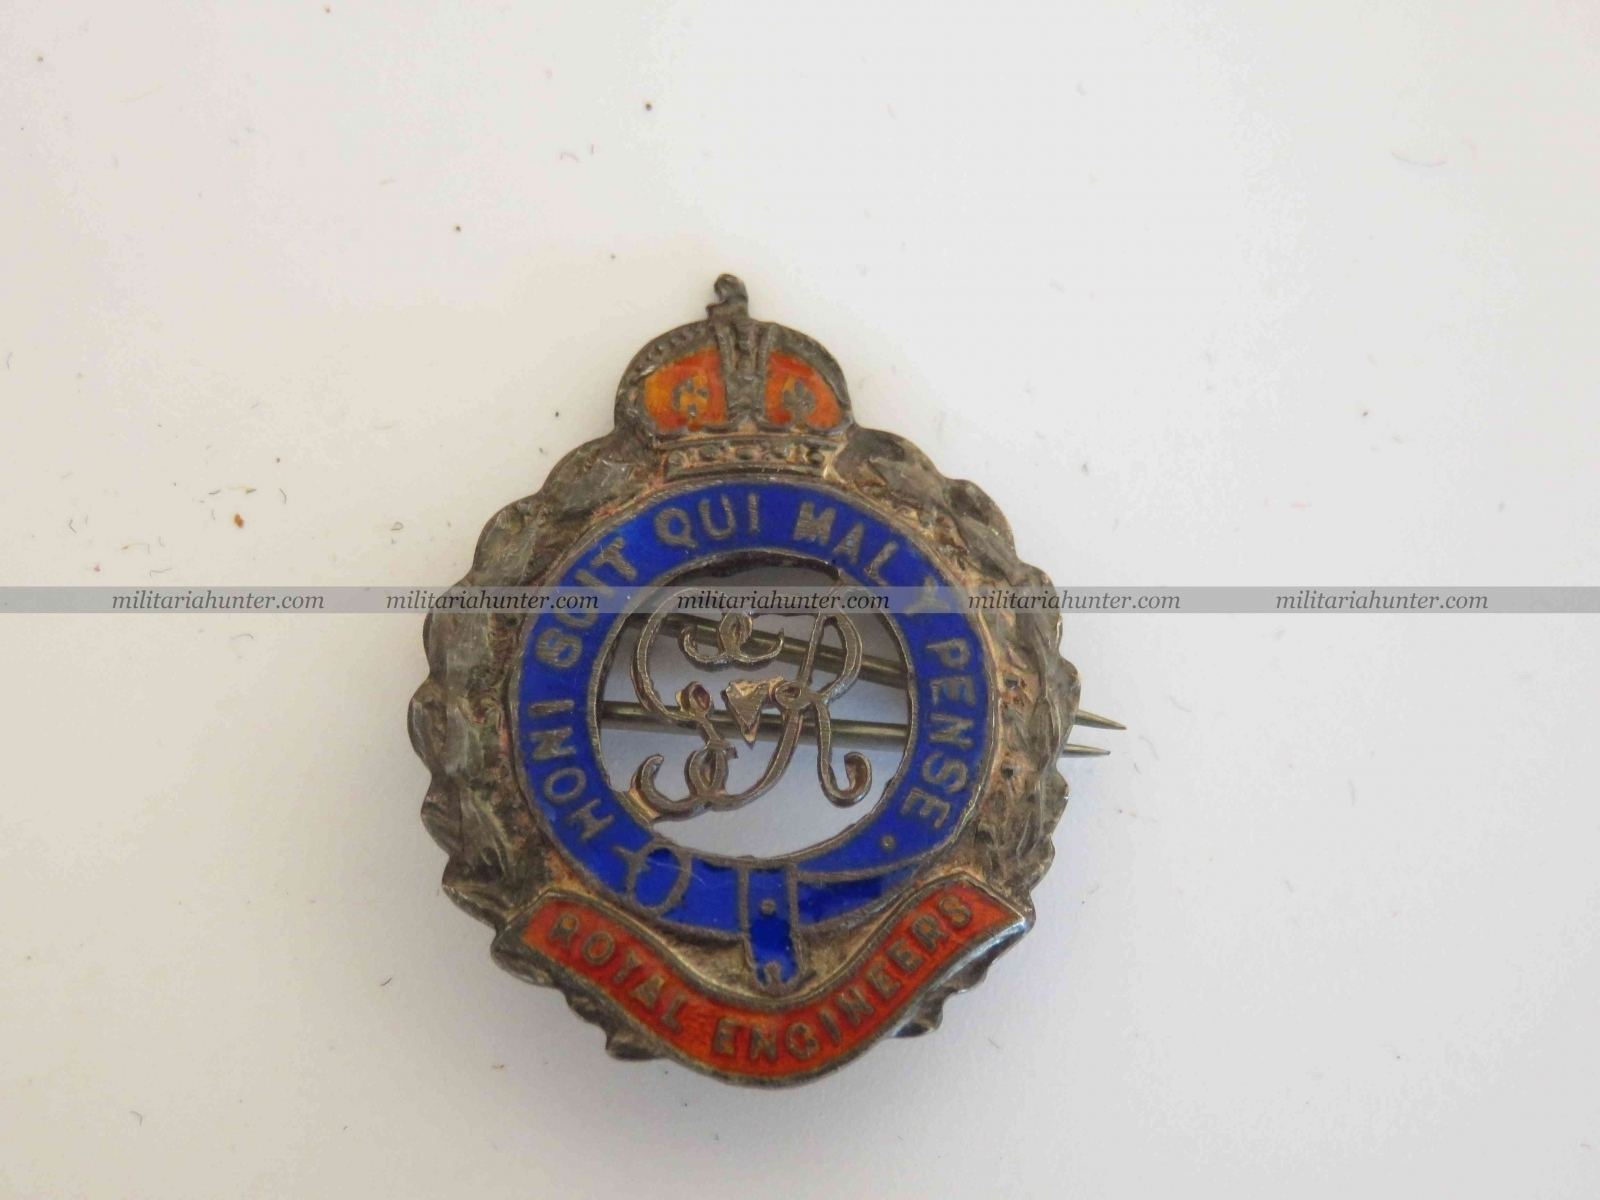 militaria : WW1 Sterling Royal Engineers sweetheart brooch